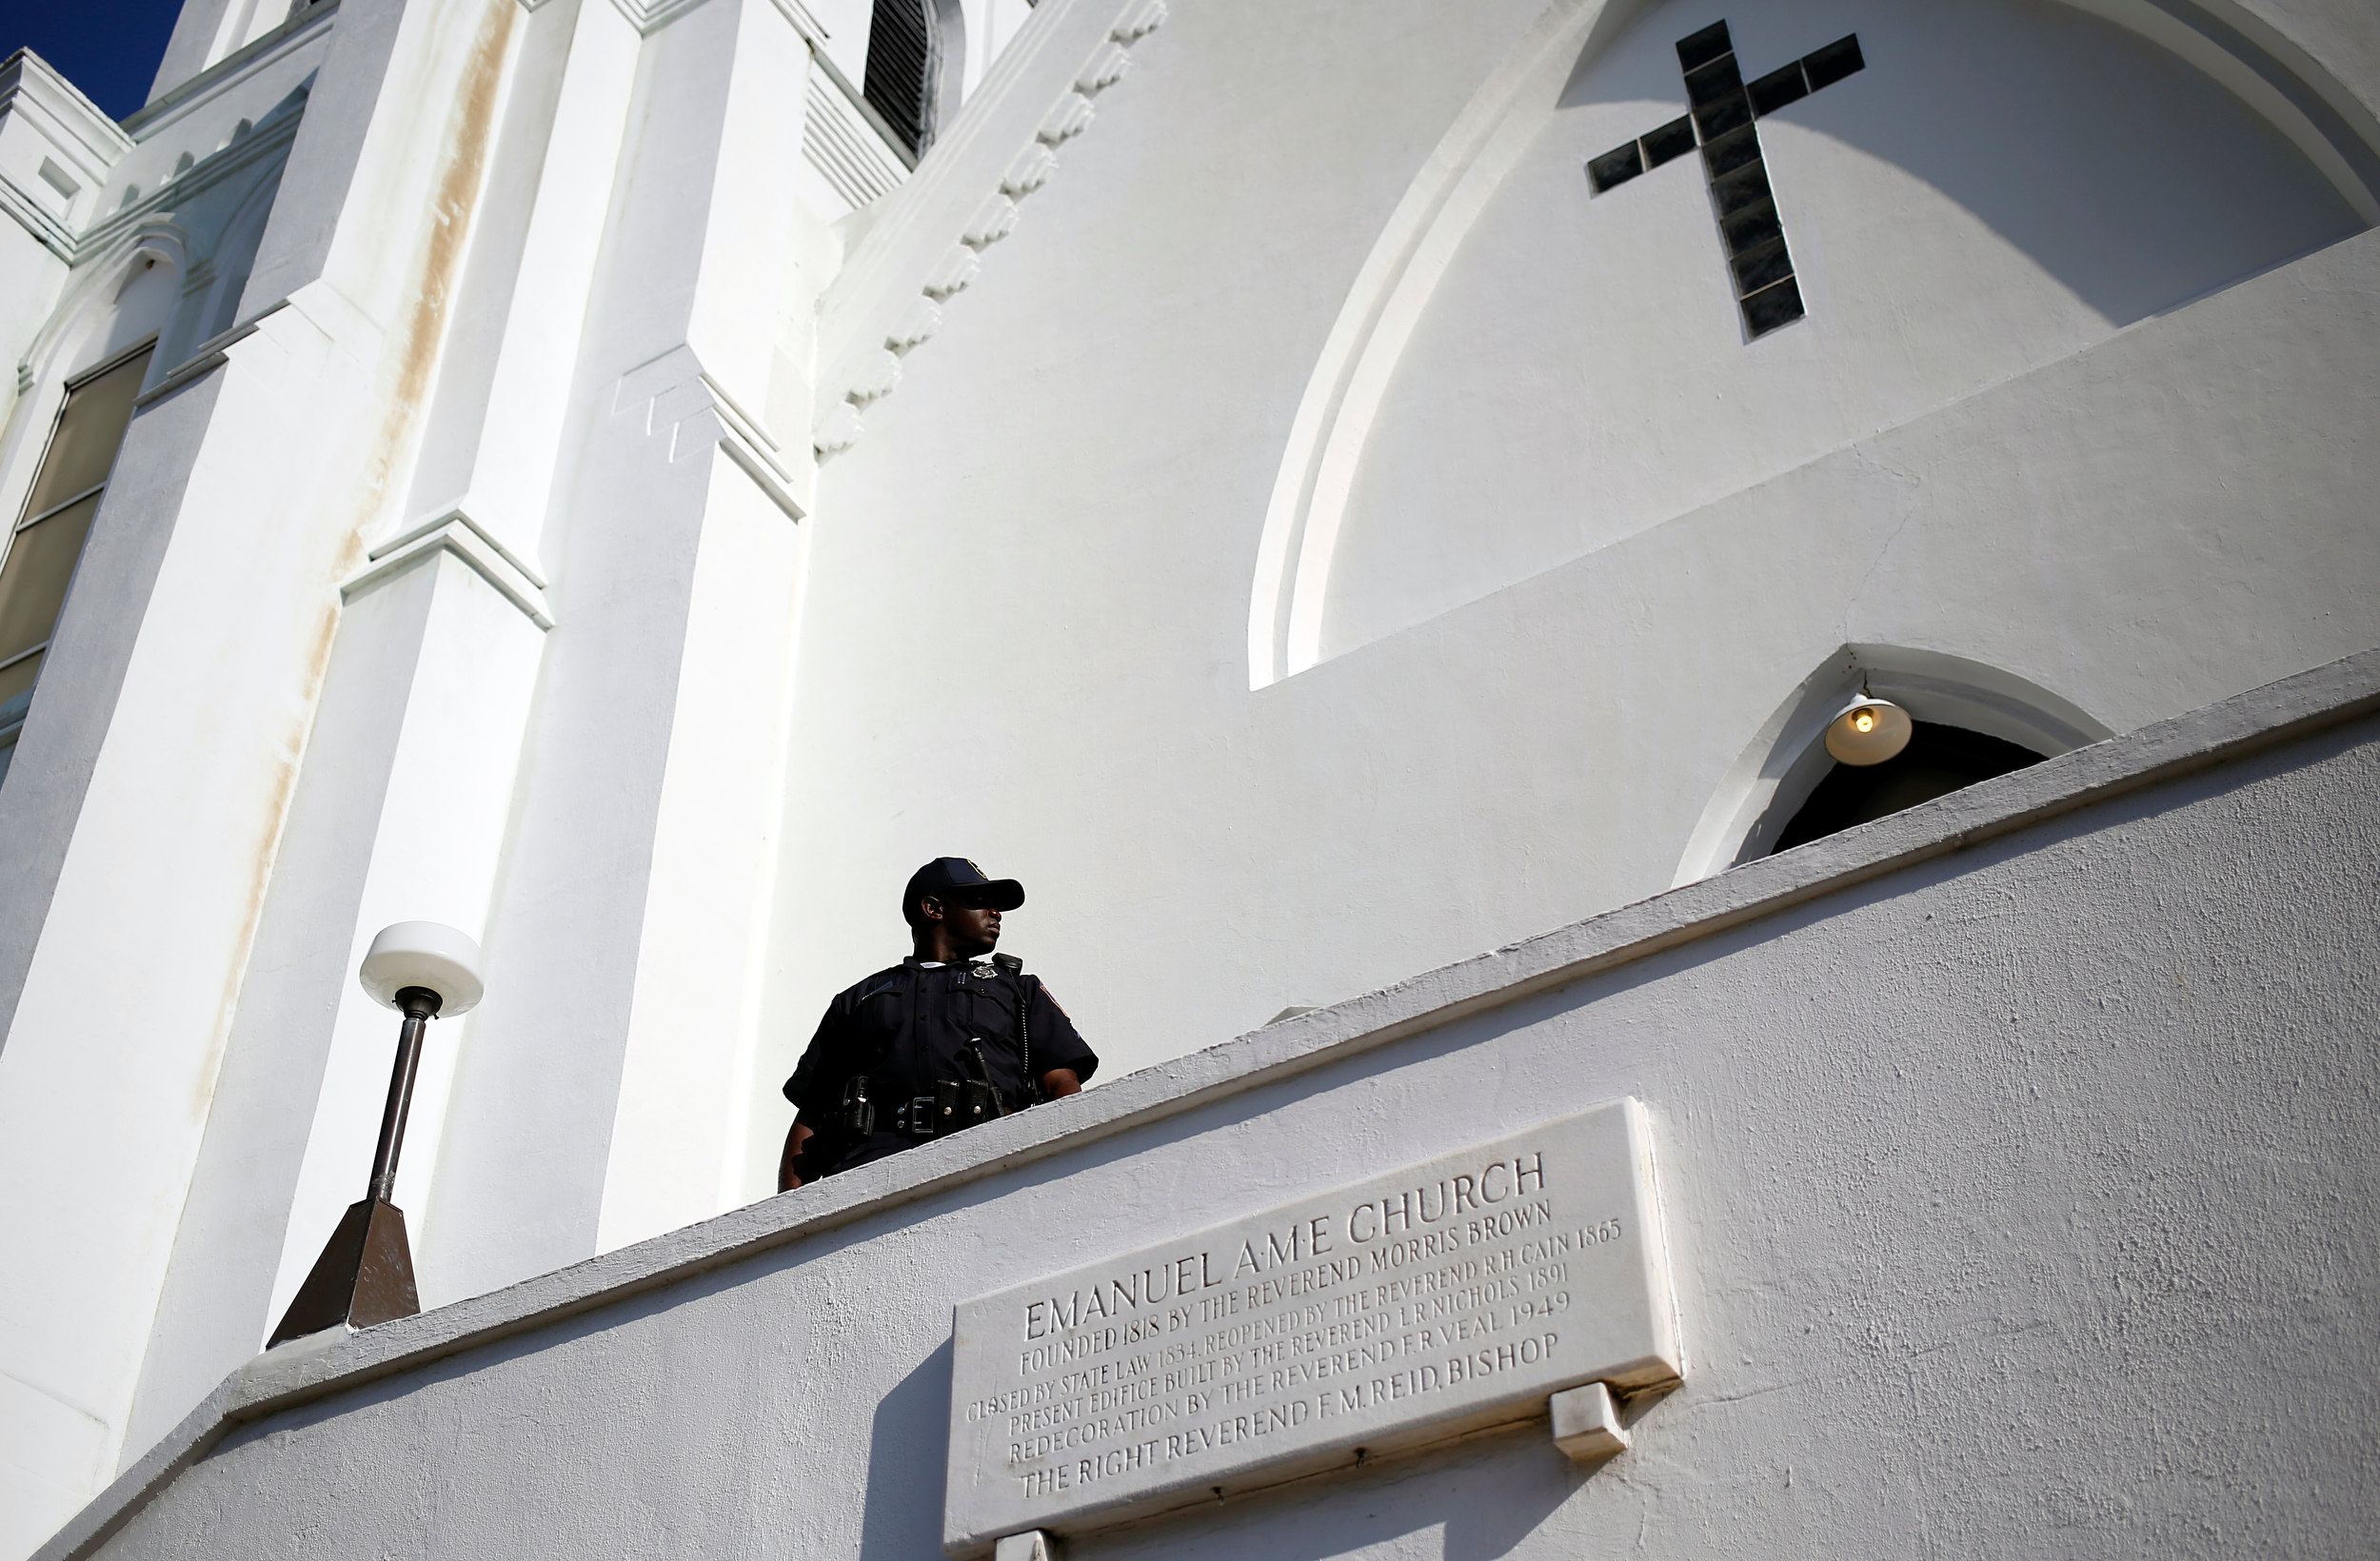 A police officer keeps watch at the entrance to the Emanuel African Methodist Episcopal Church as a worship service took place inside, four days after a shooting by Dylann Roof left nine black churchgoers dead, Sunday, June 21, 2015, in Charleston, S.C.